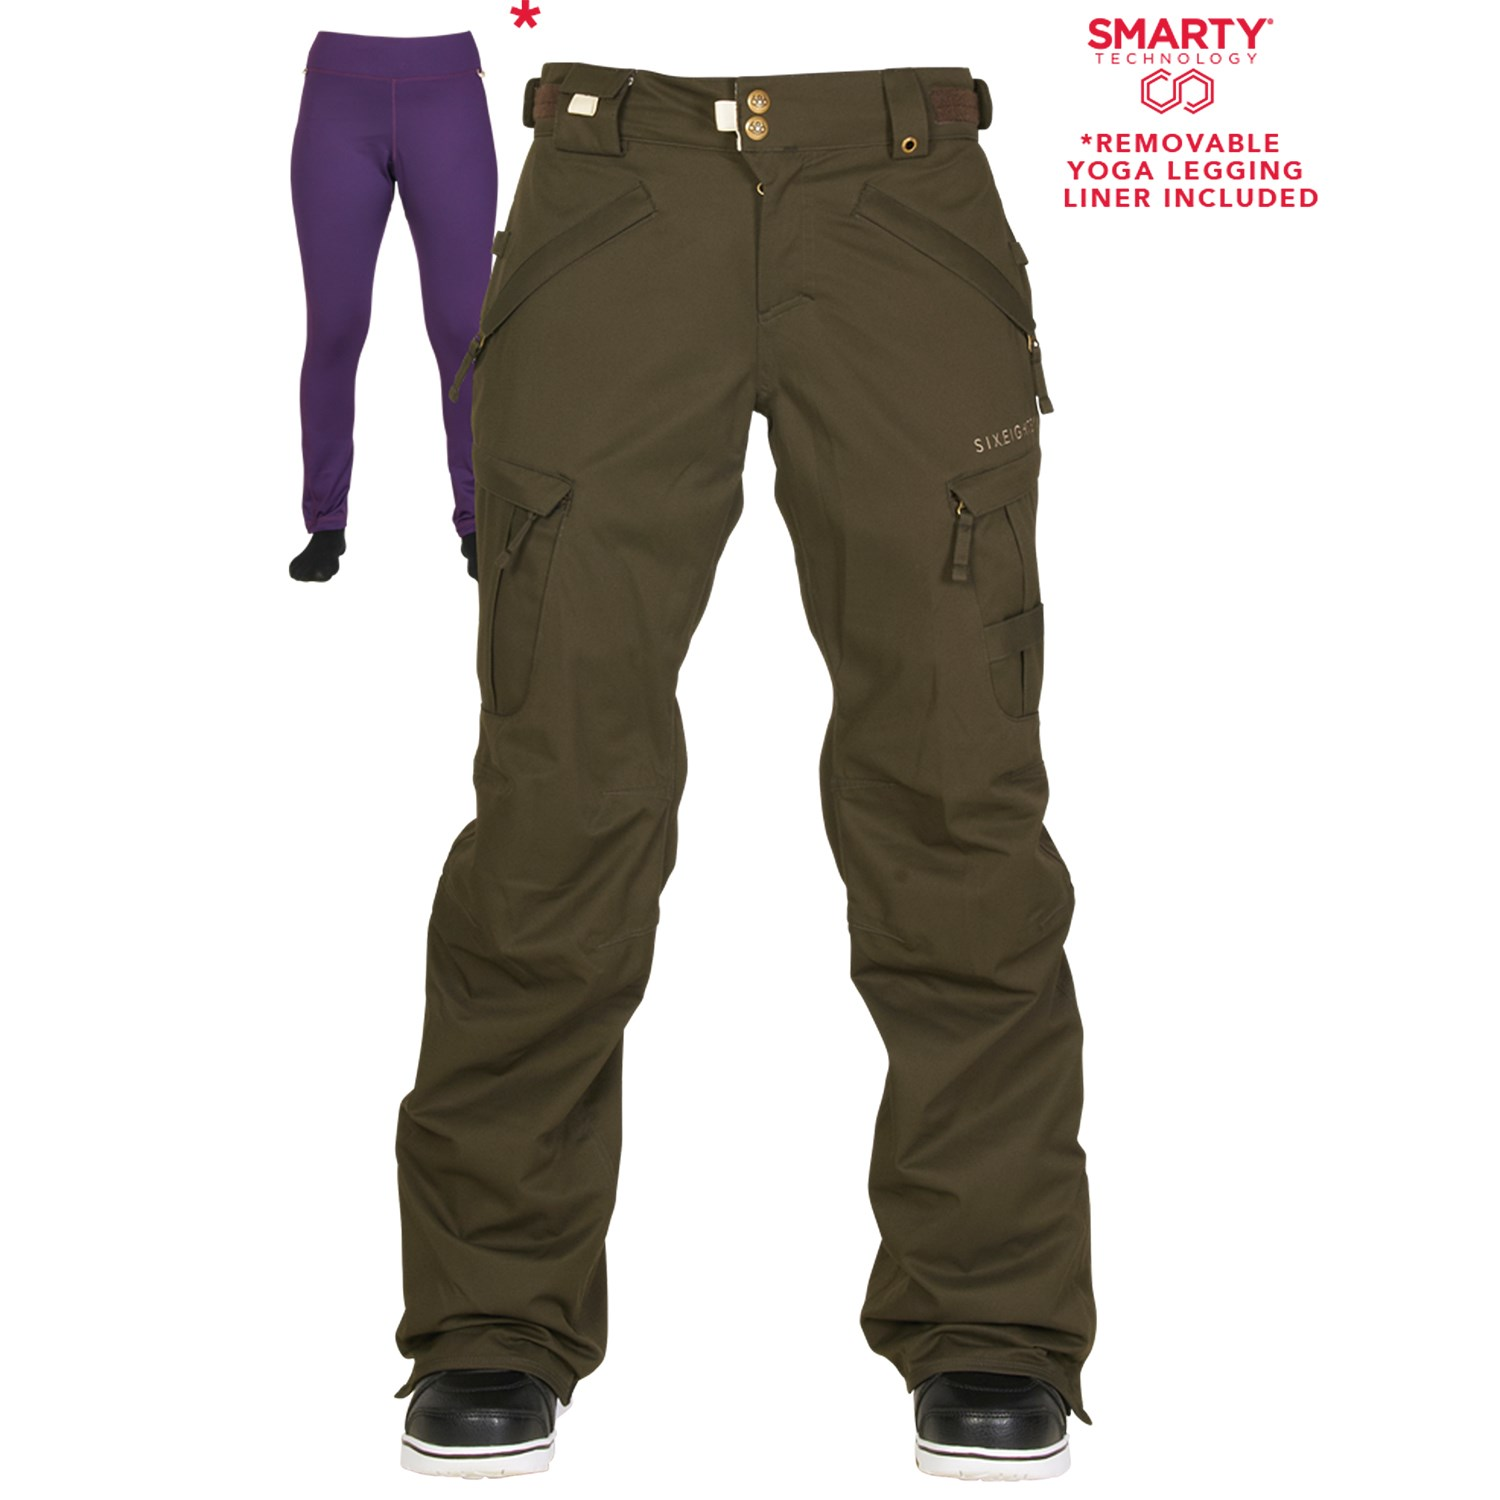 686 Authentic Smarty Cargo Pants - Women's | evo outlet